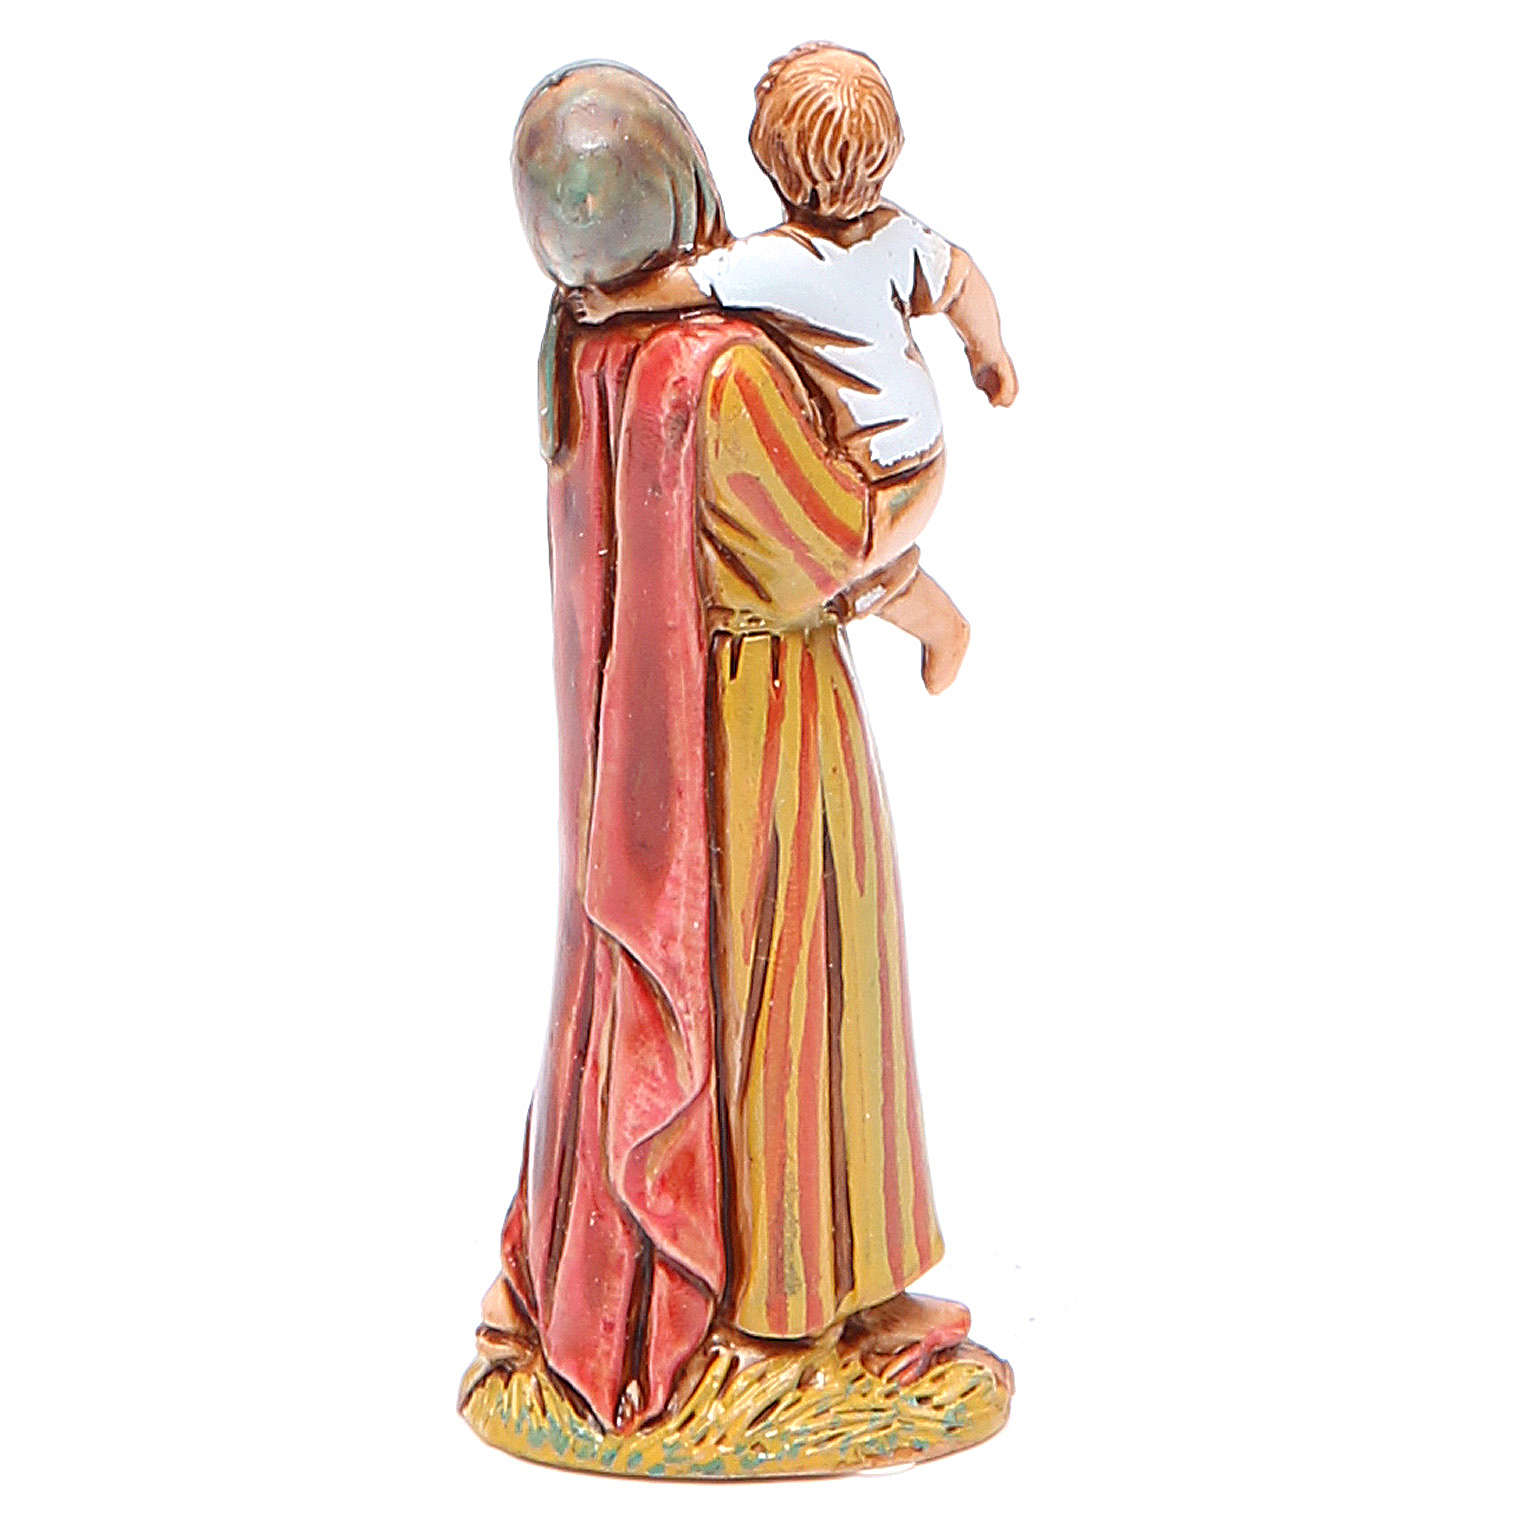 Woman carrying child 6.5cm by Moranduzzo, historic style 4